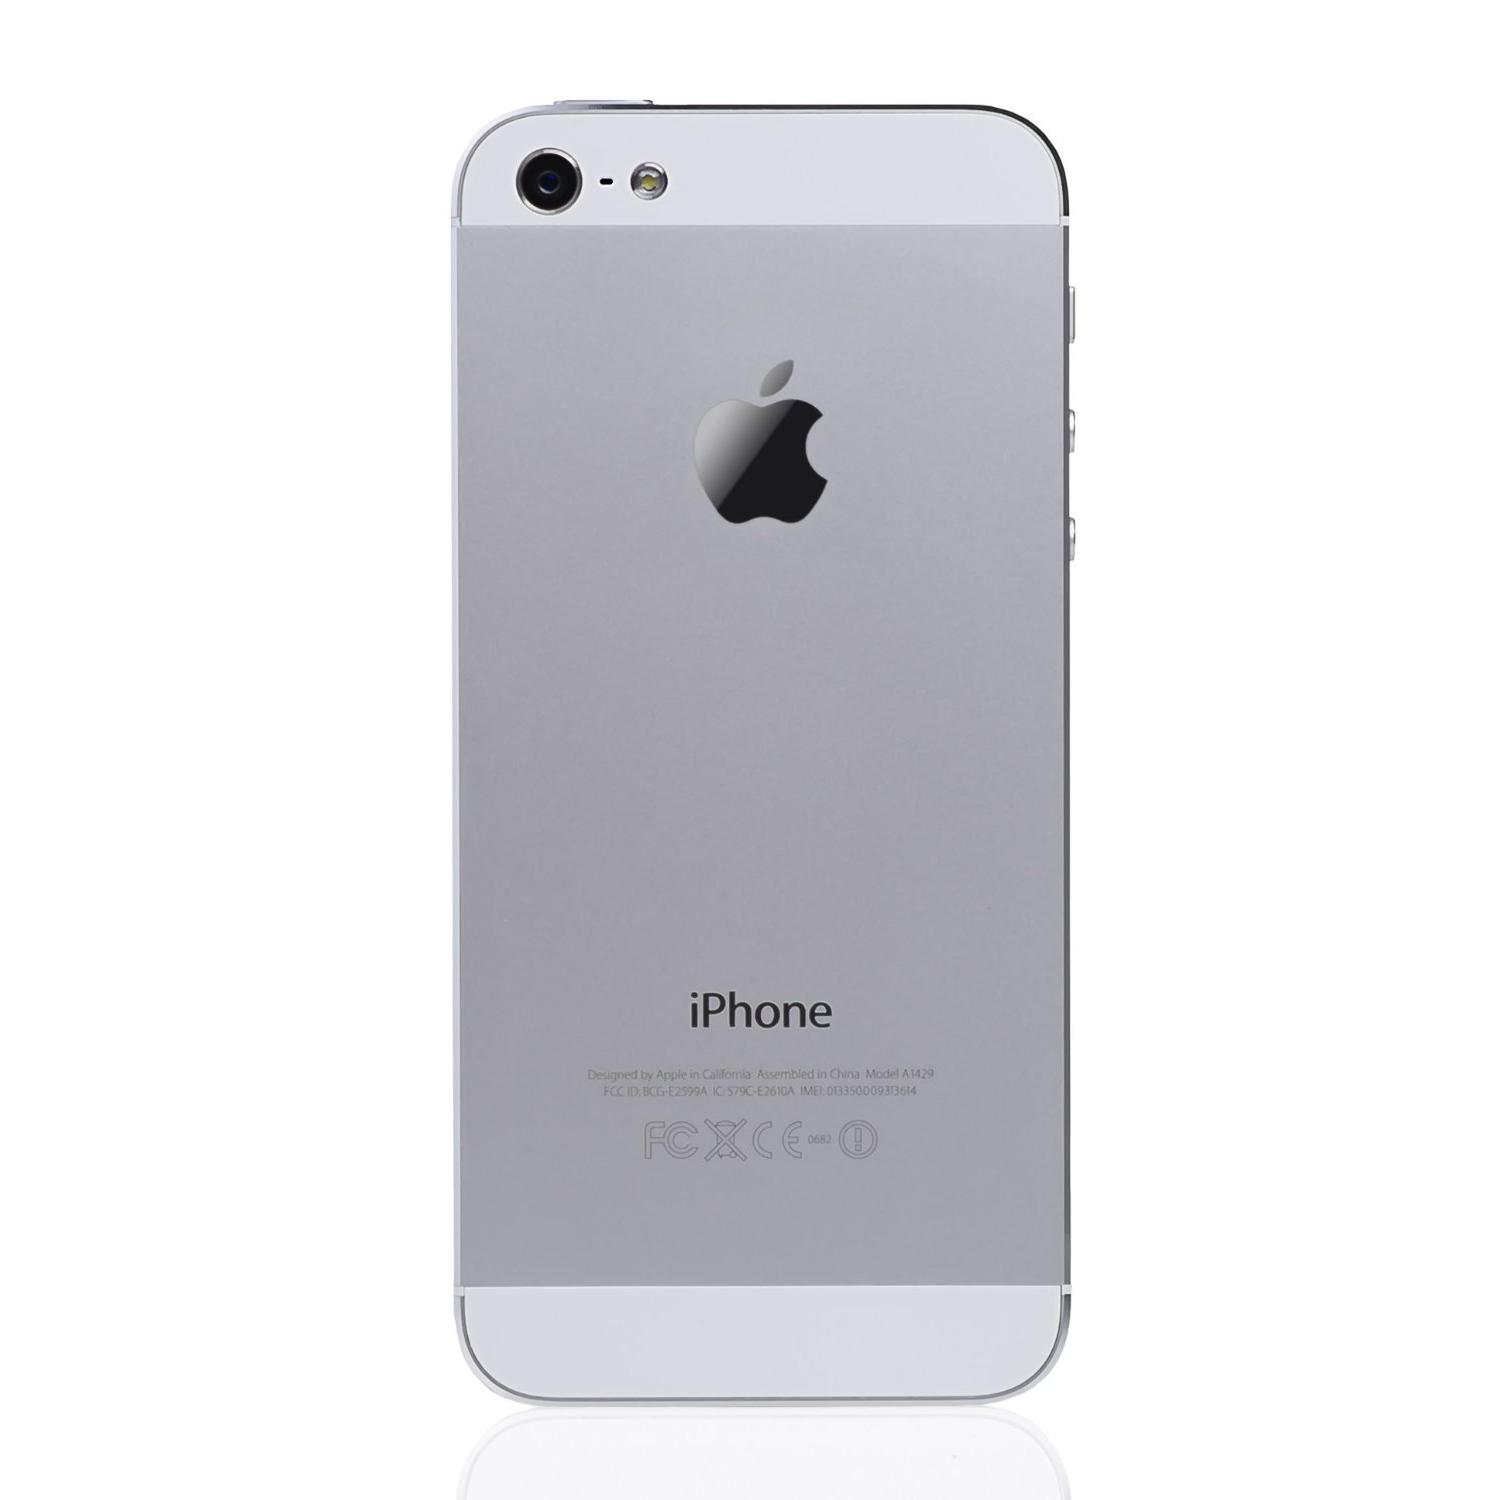 Iphone 5 S Libre Iphone 5 16 Gb Blanco Libre Reacondicionado Back Market